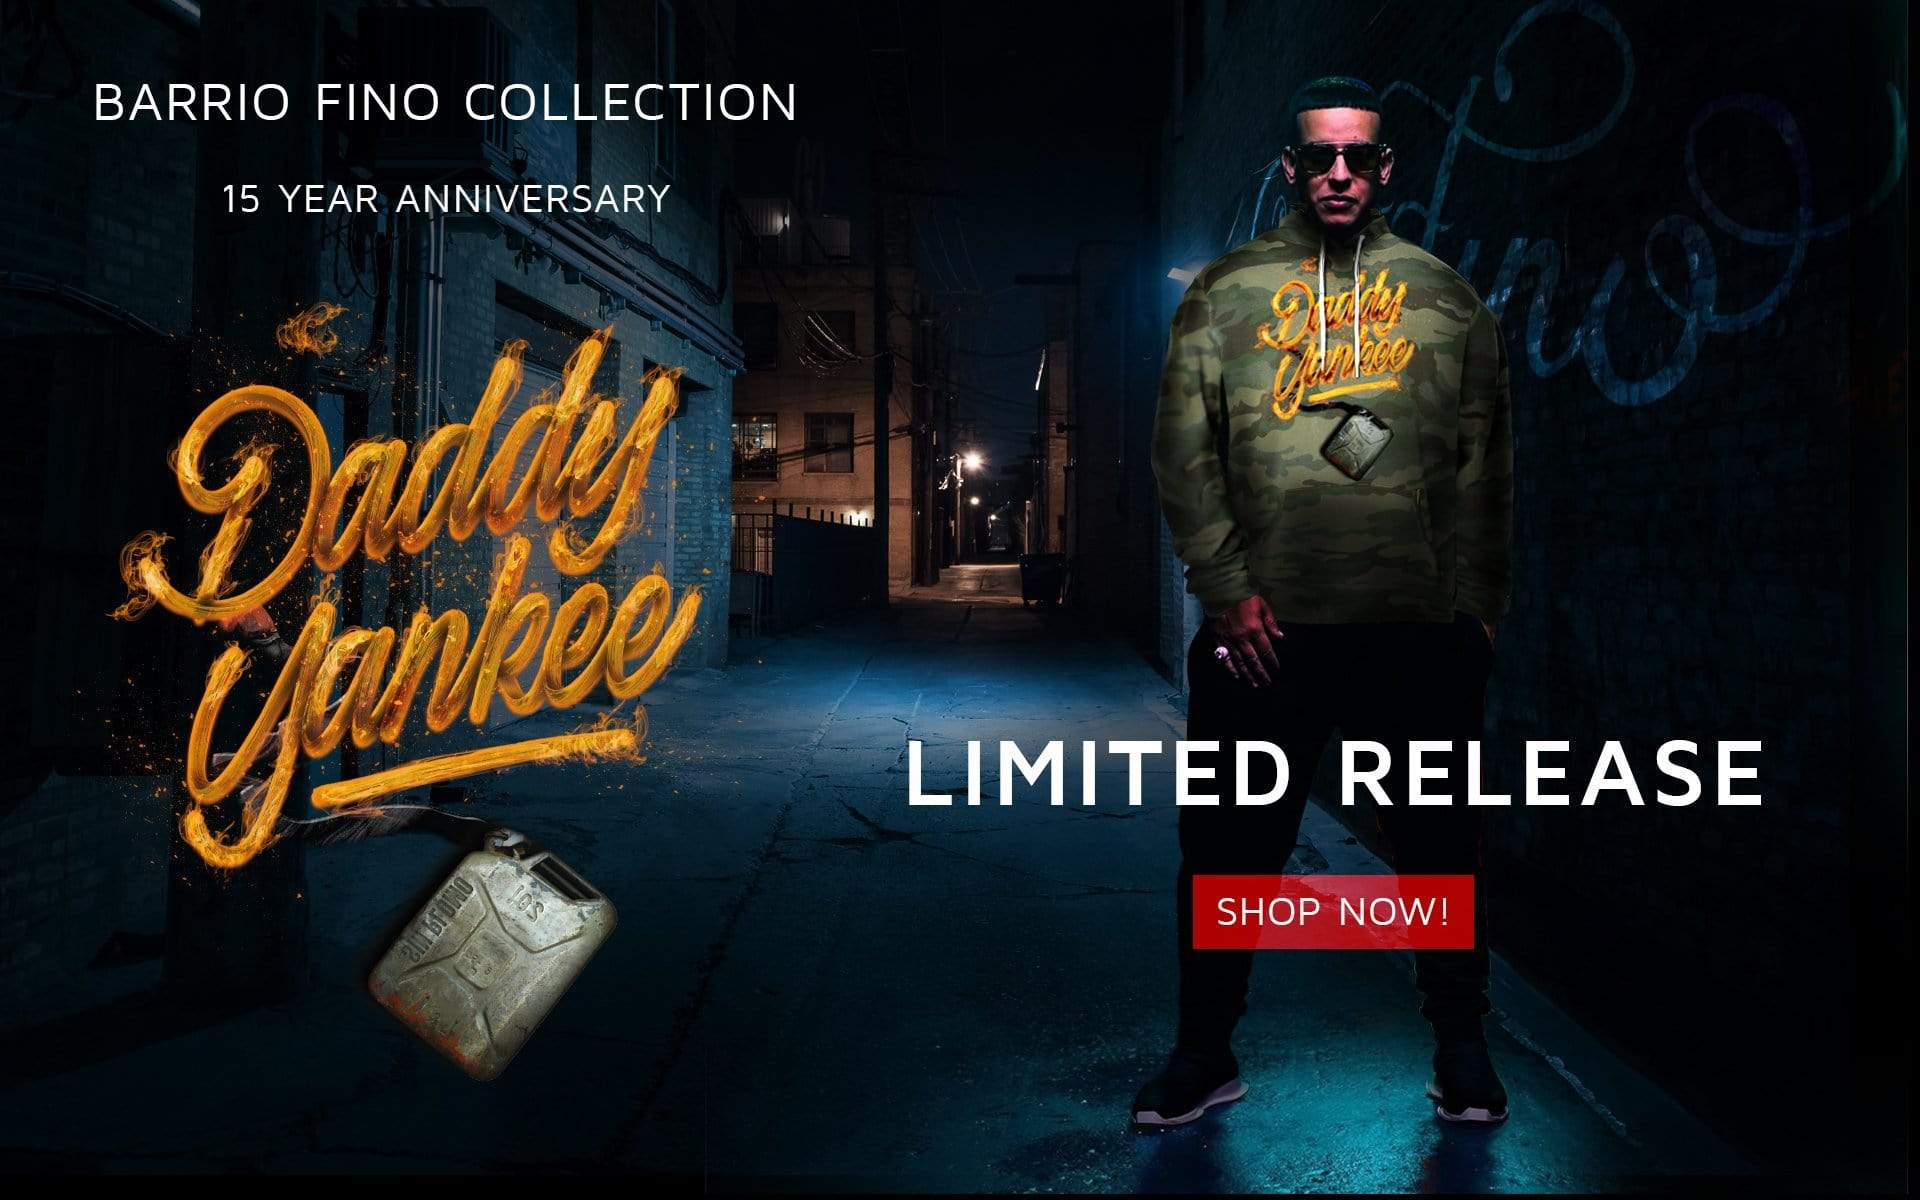 Barrio Fino 15th Anniversary Collection